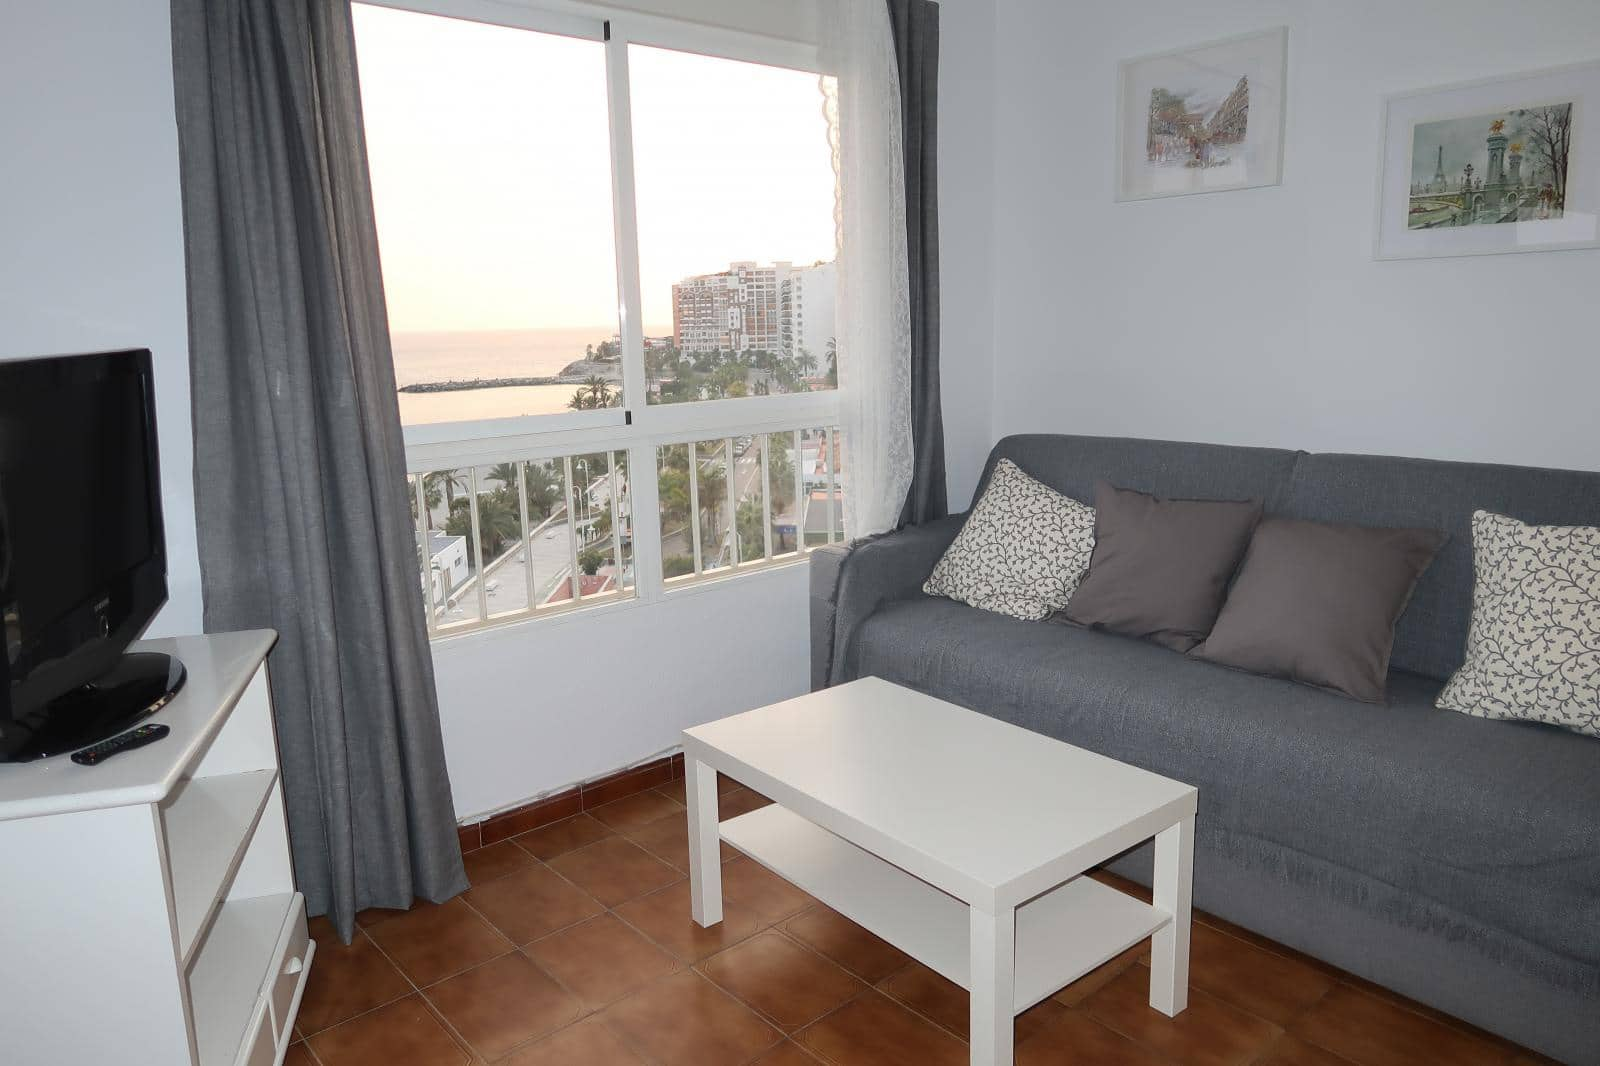 1 bedroom Apartment for holiday rental in Almunecar with pool - € 229 (Ref: 3095240)